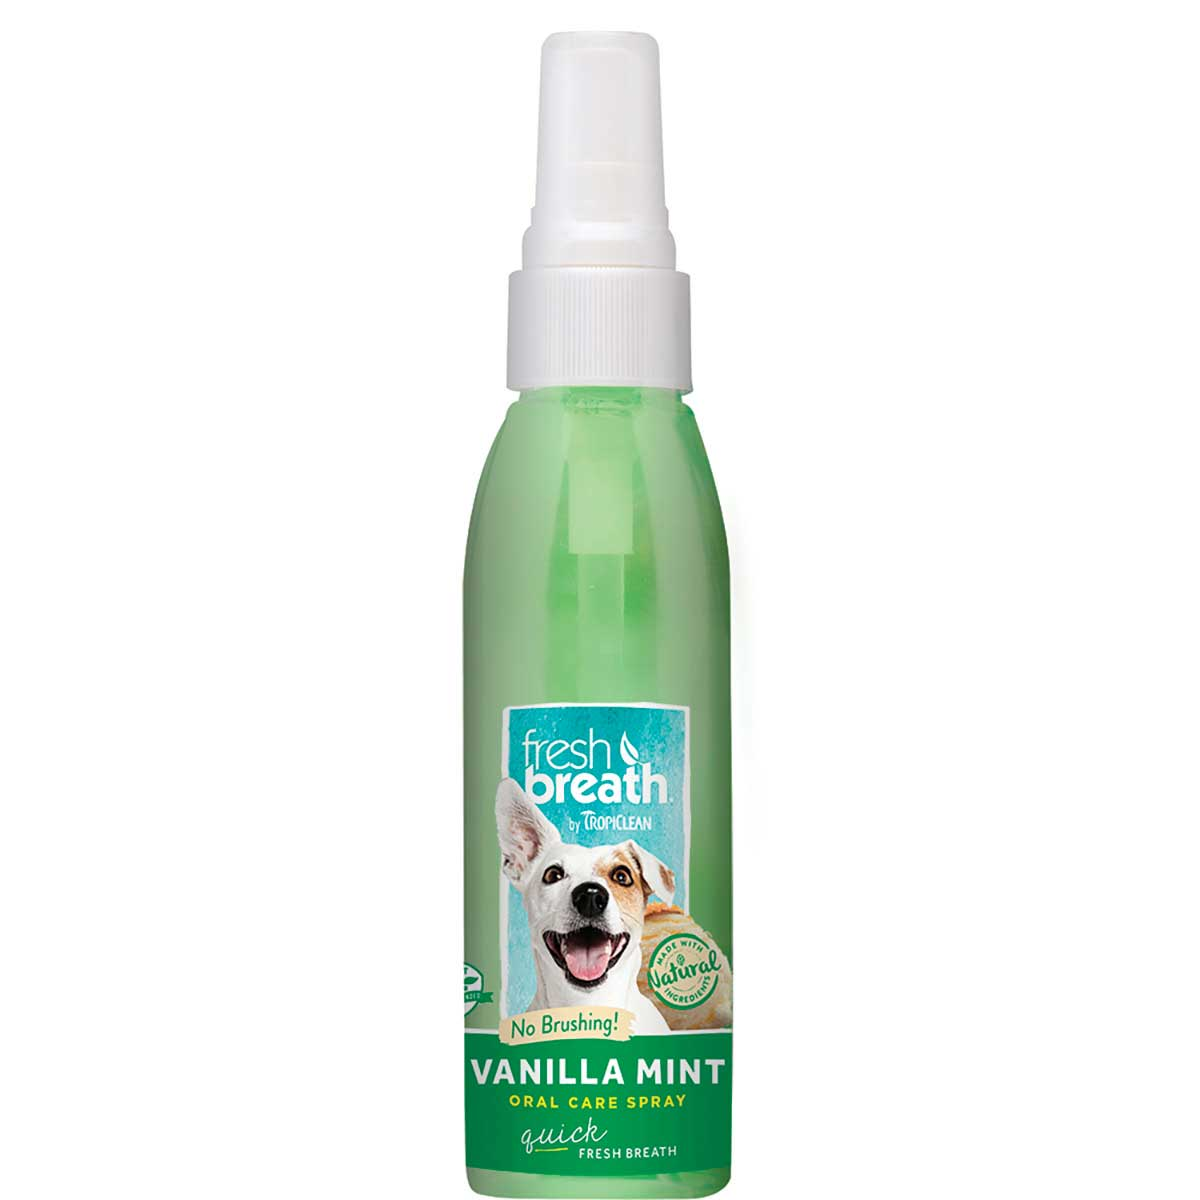 Tropiclean Fresh Breath Oral Care Spray for Dogs - Vanilla Mint 4 oz